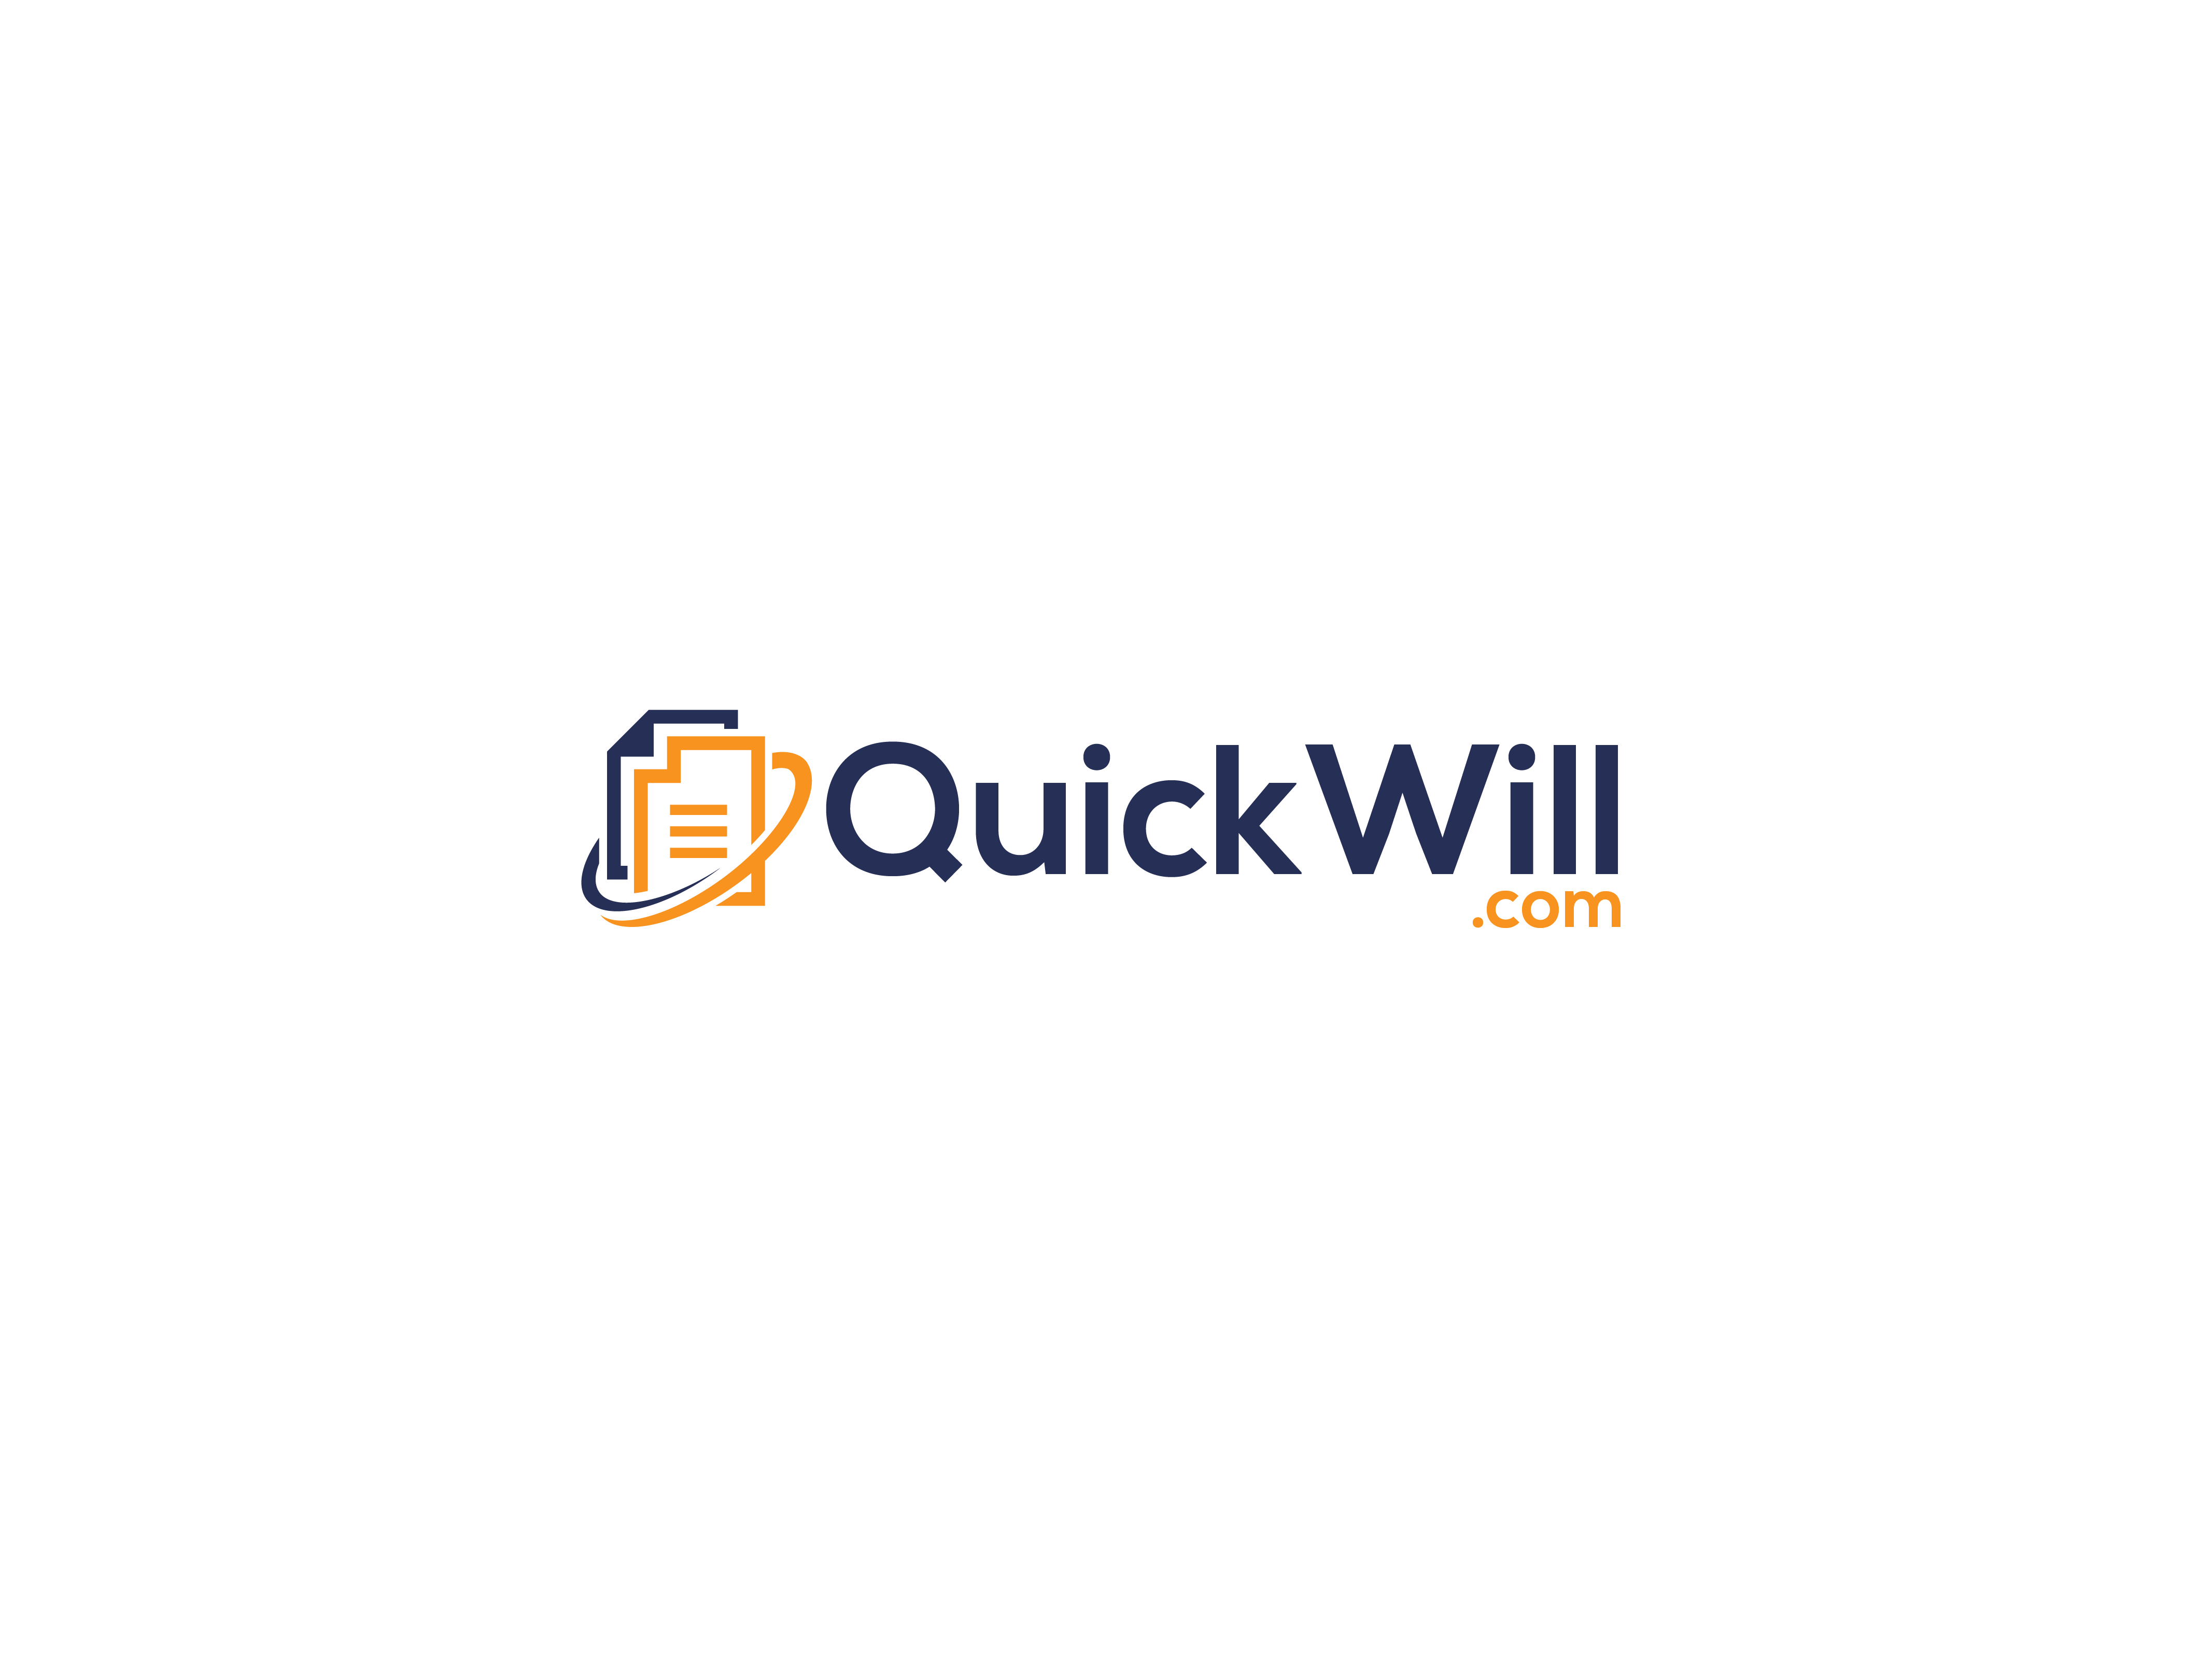 Quick Will Introduces The Fastest Will Writing Service In The Uk Writing Services About Uk Finance